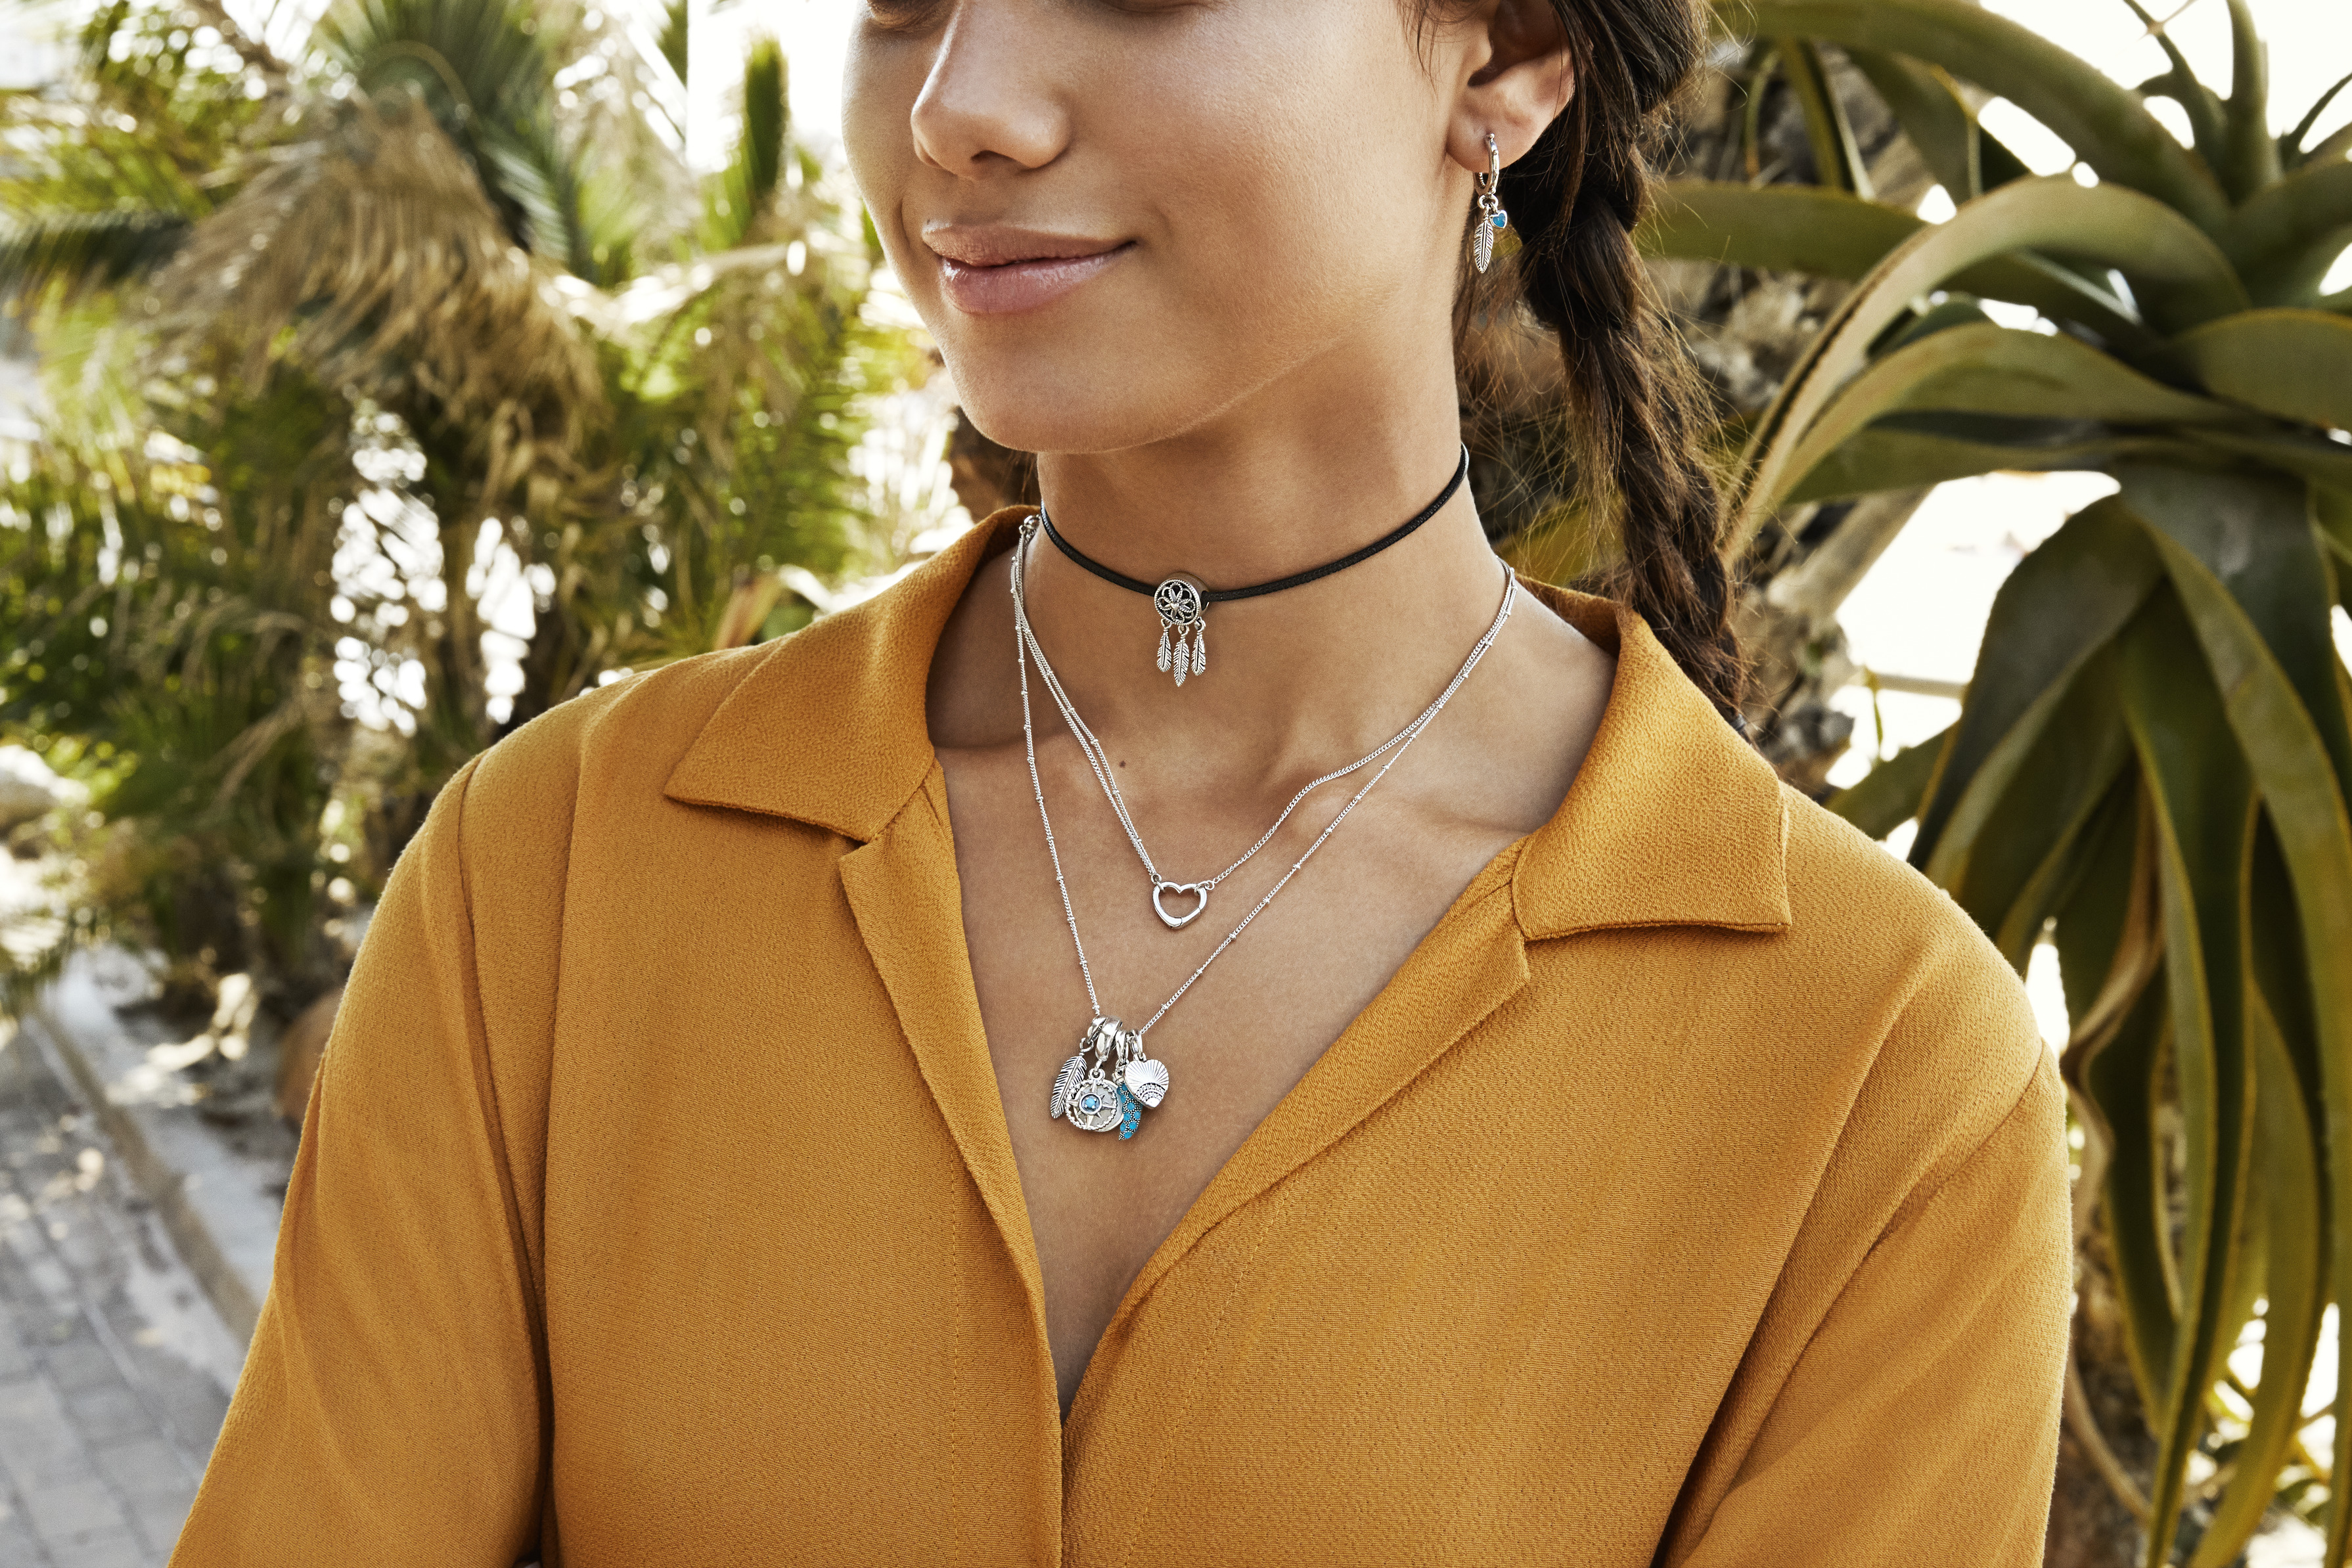 Long, layered necklaces